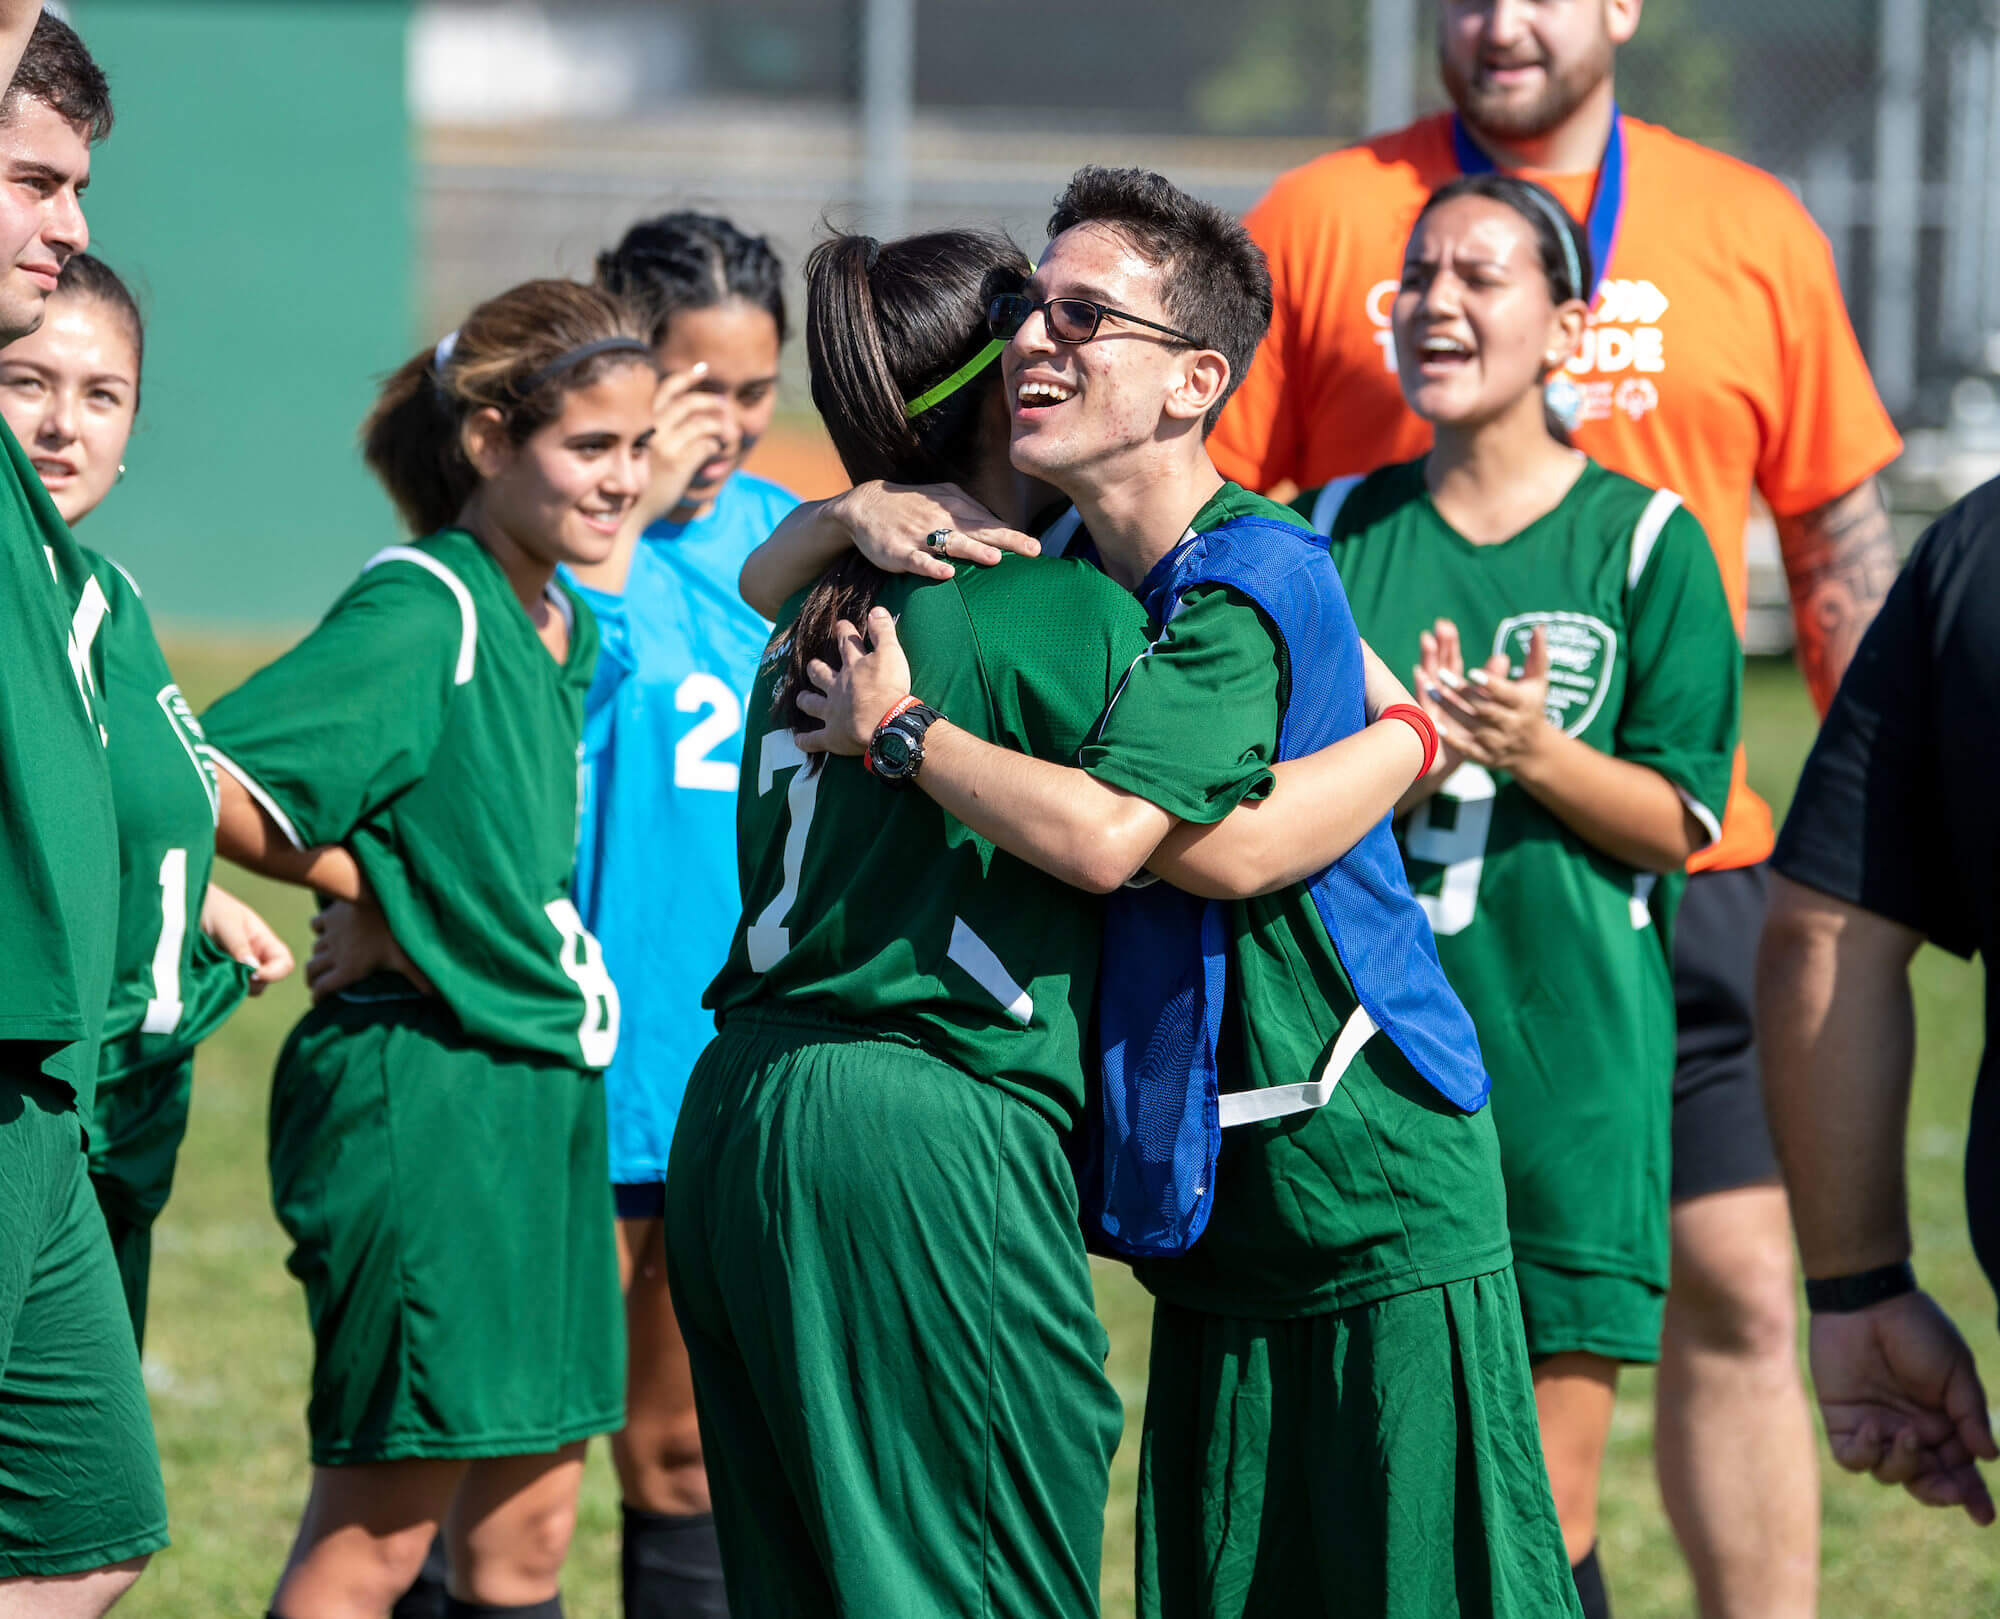 Two students hugging after a Unified soccer game.